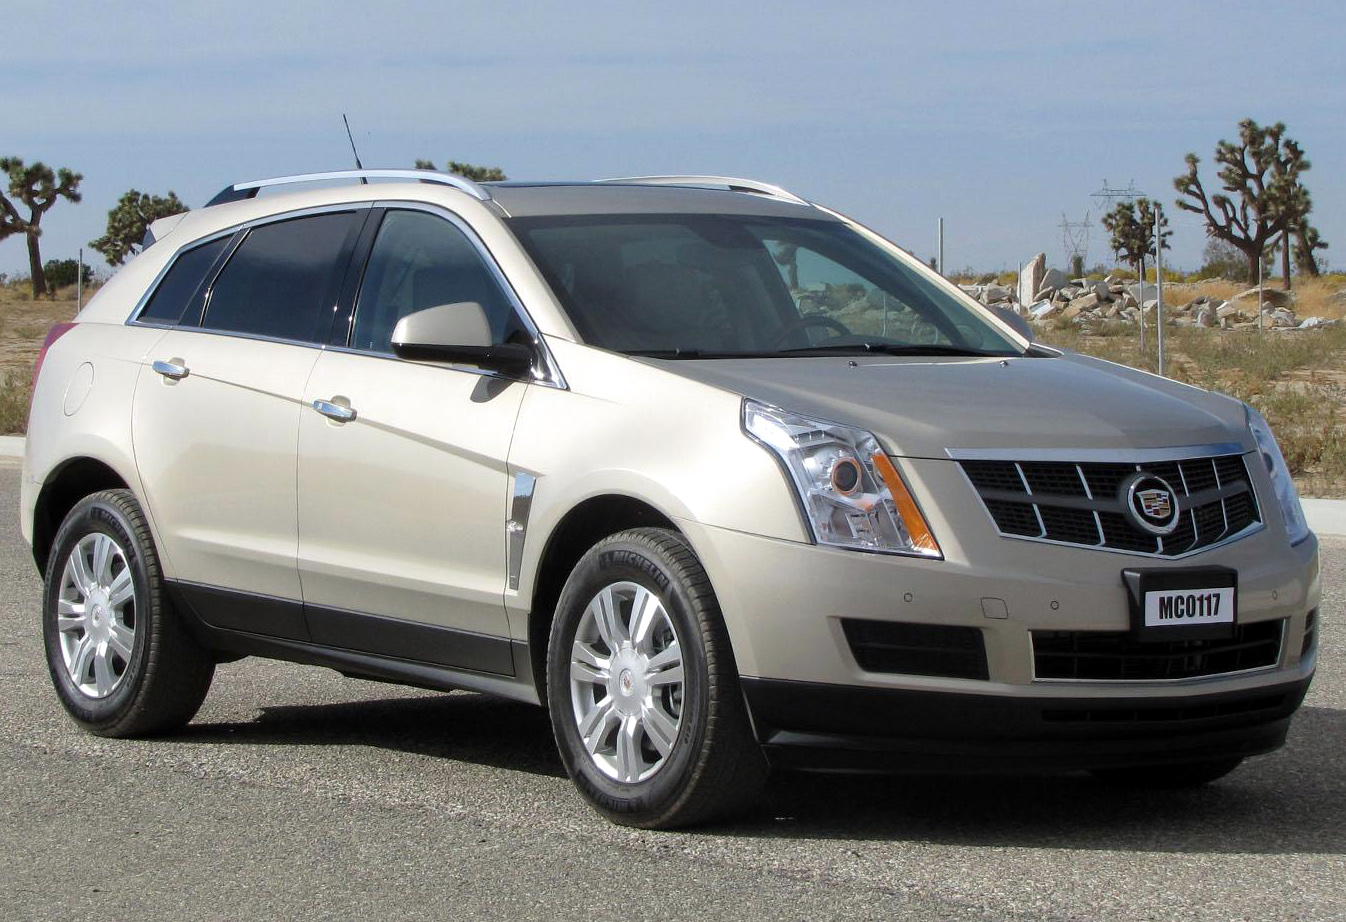 rapha review reviews l driving test with created srx road collection suv luxury cadillac awd